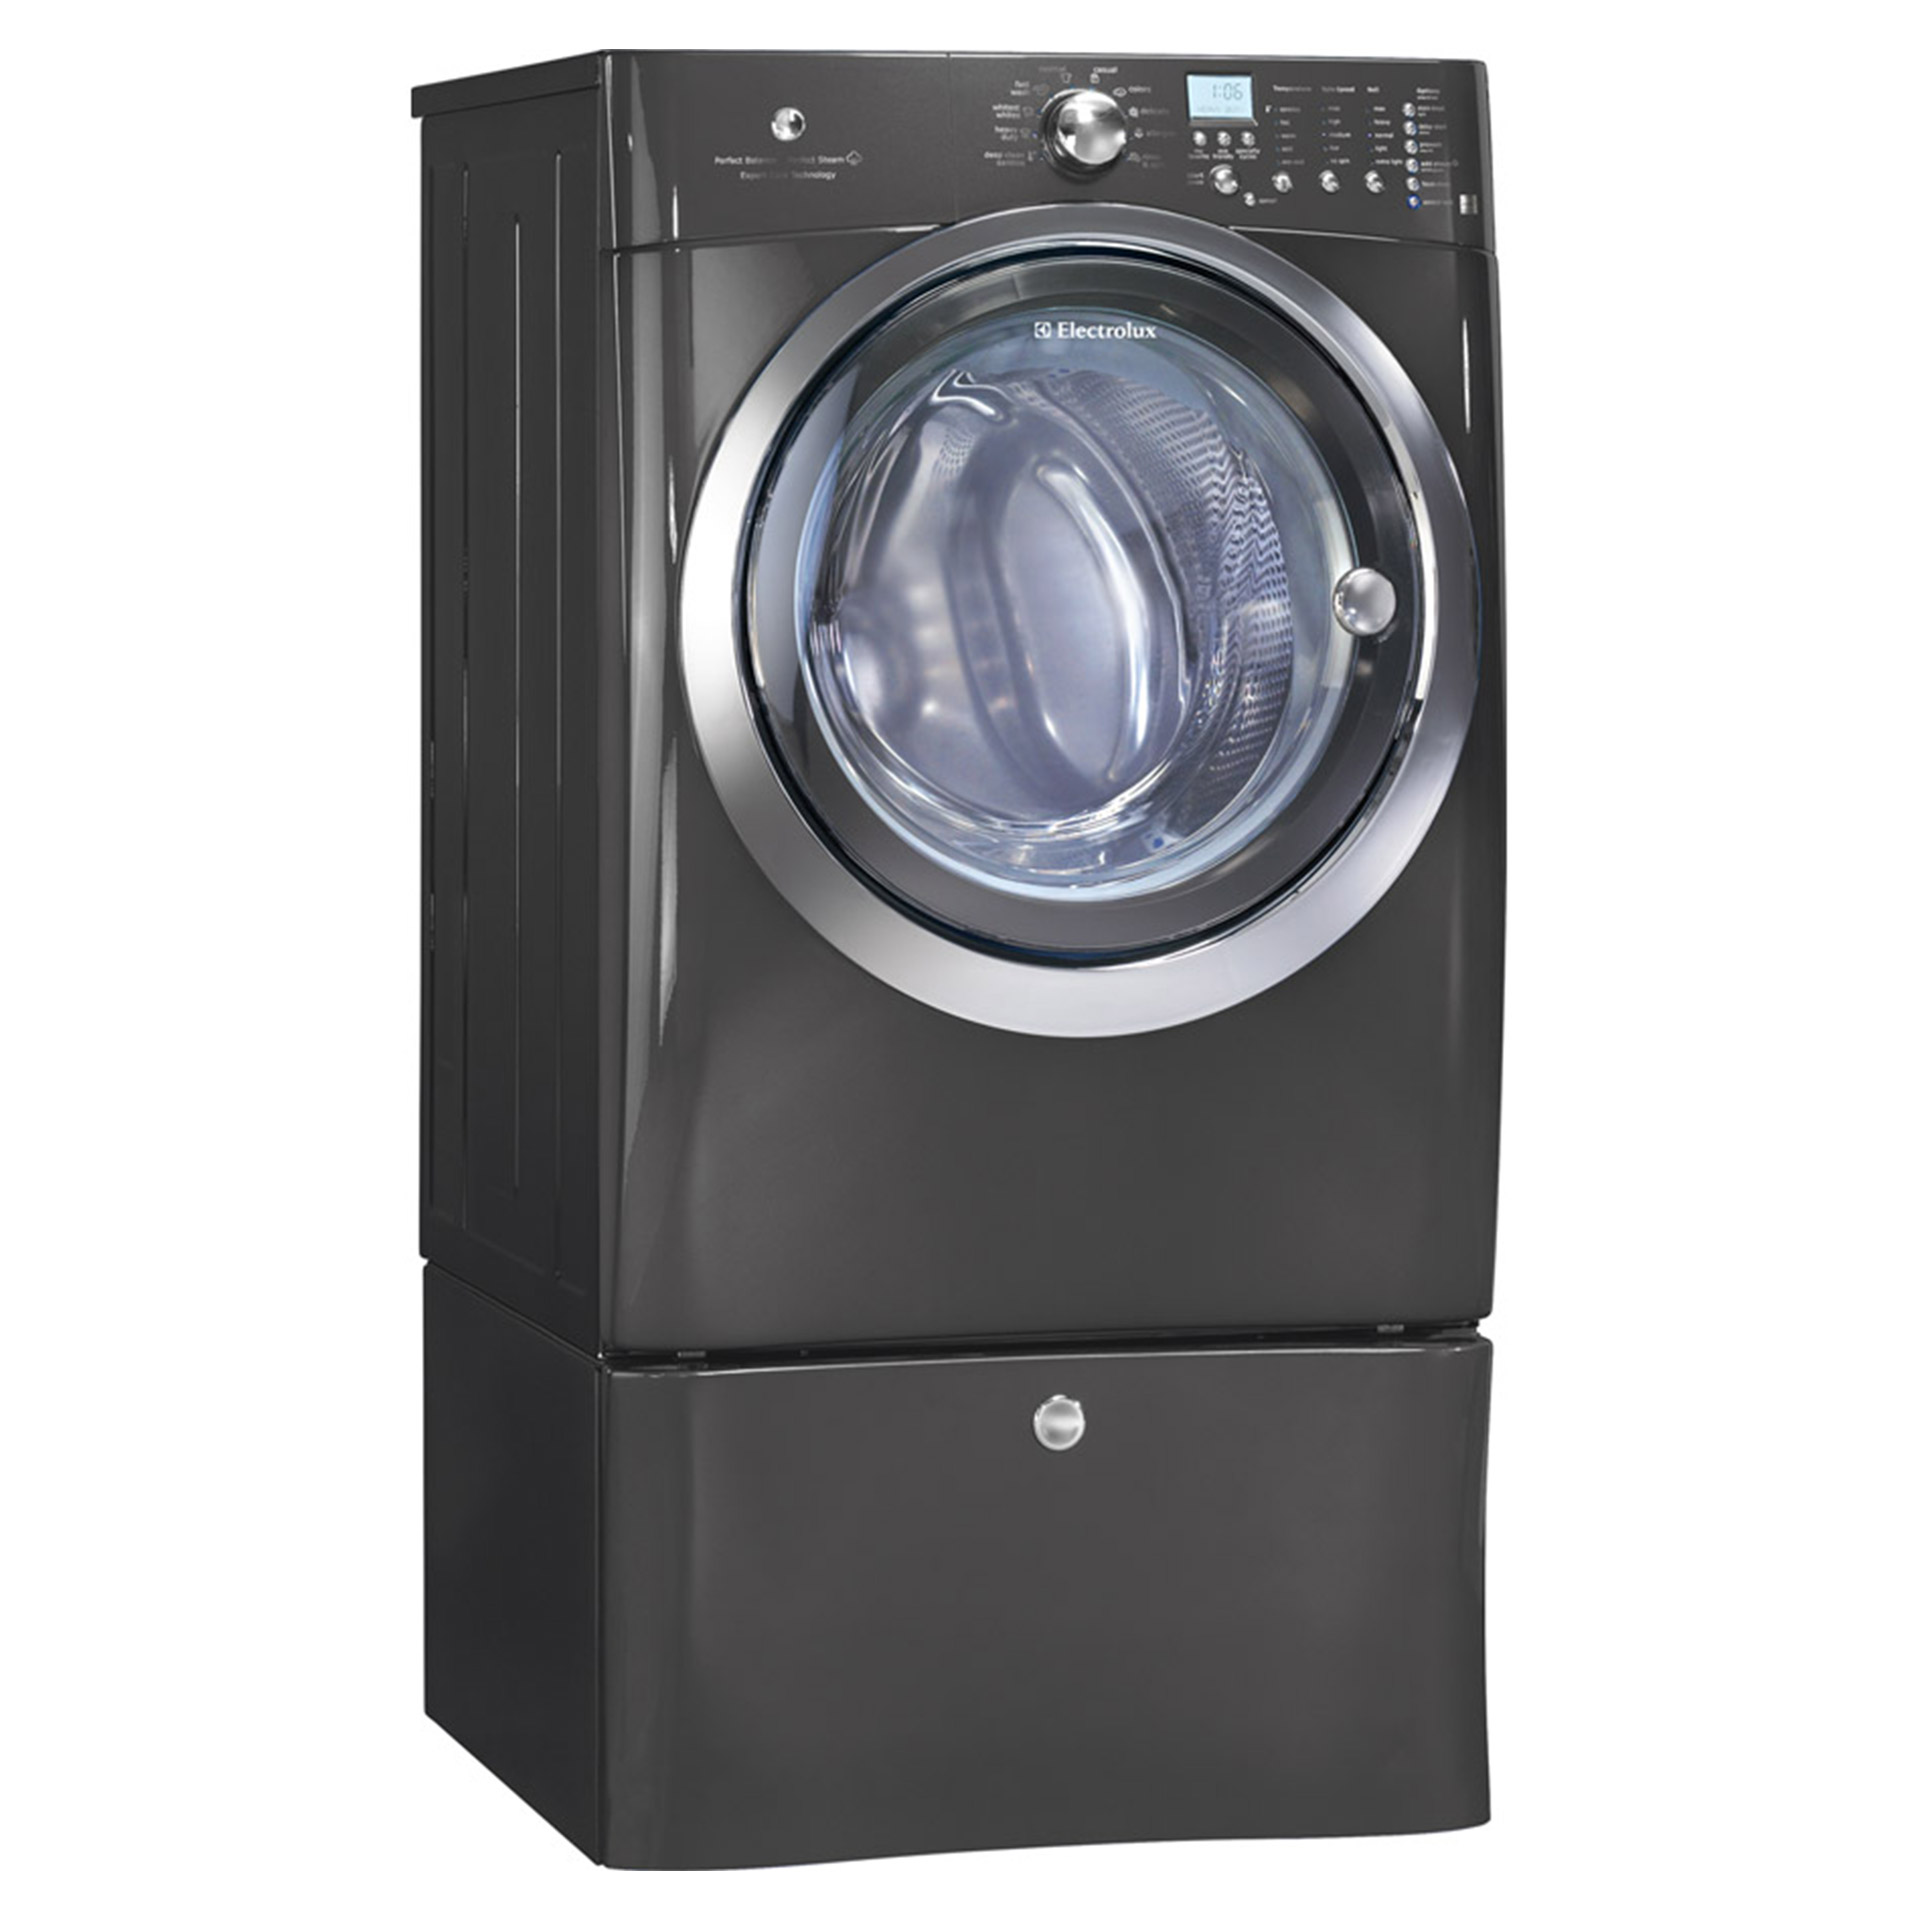 Electrolux 4 3 cu ft front load washer with iq touch Electrolux washer and dryer